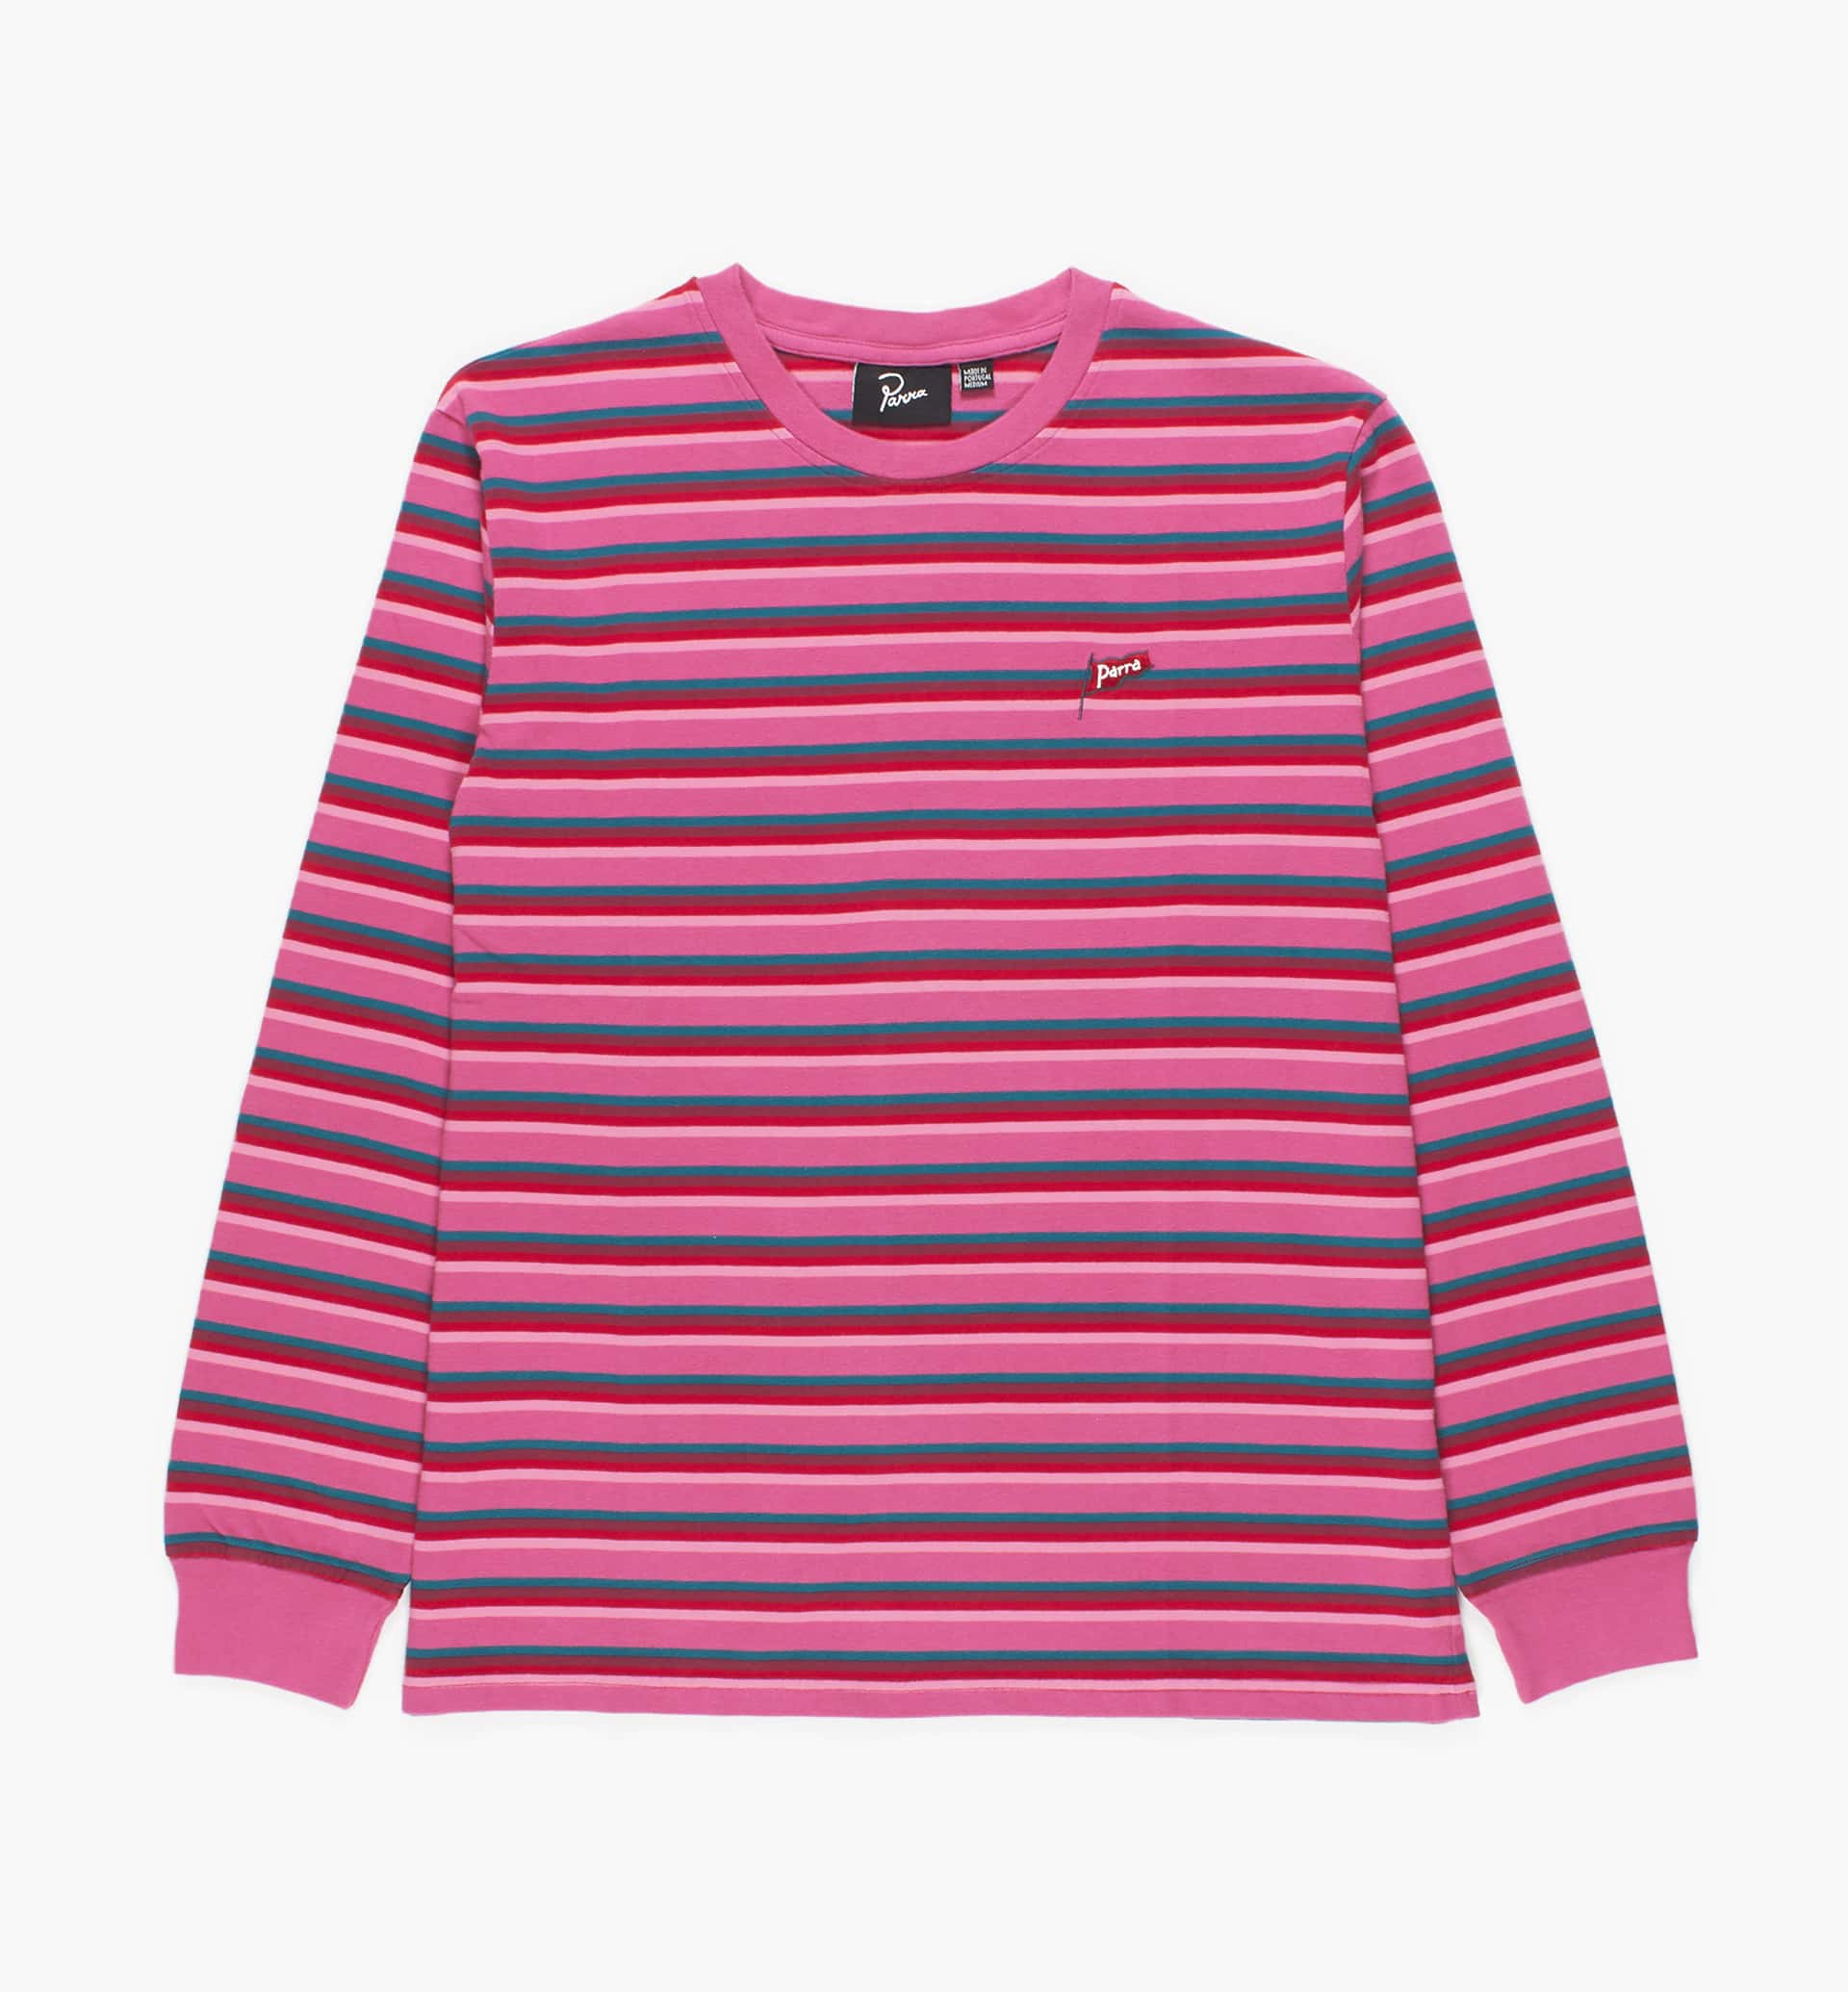 Parra - flapping flag striped long sleeve